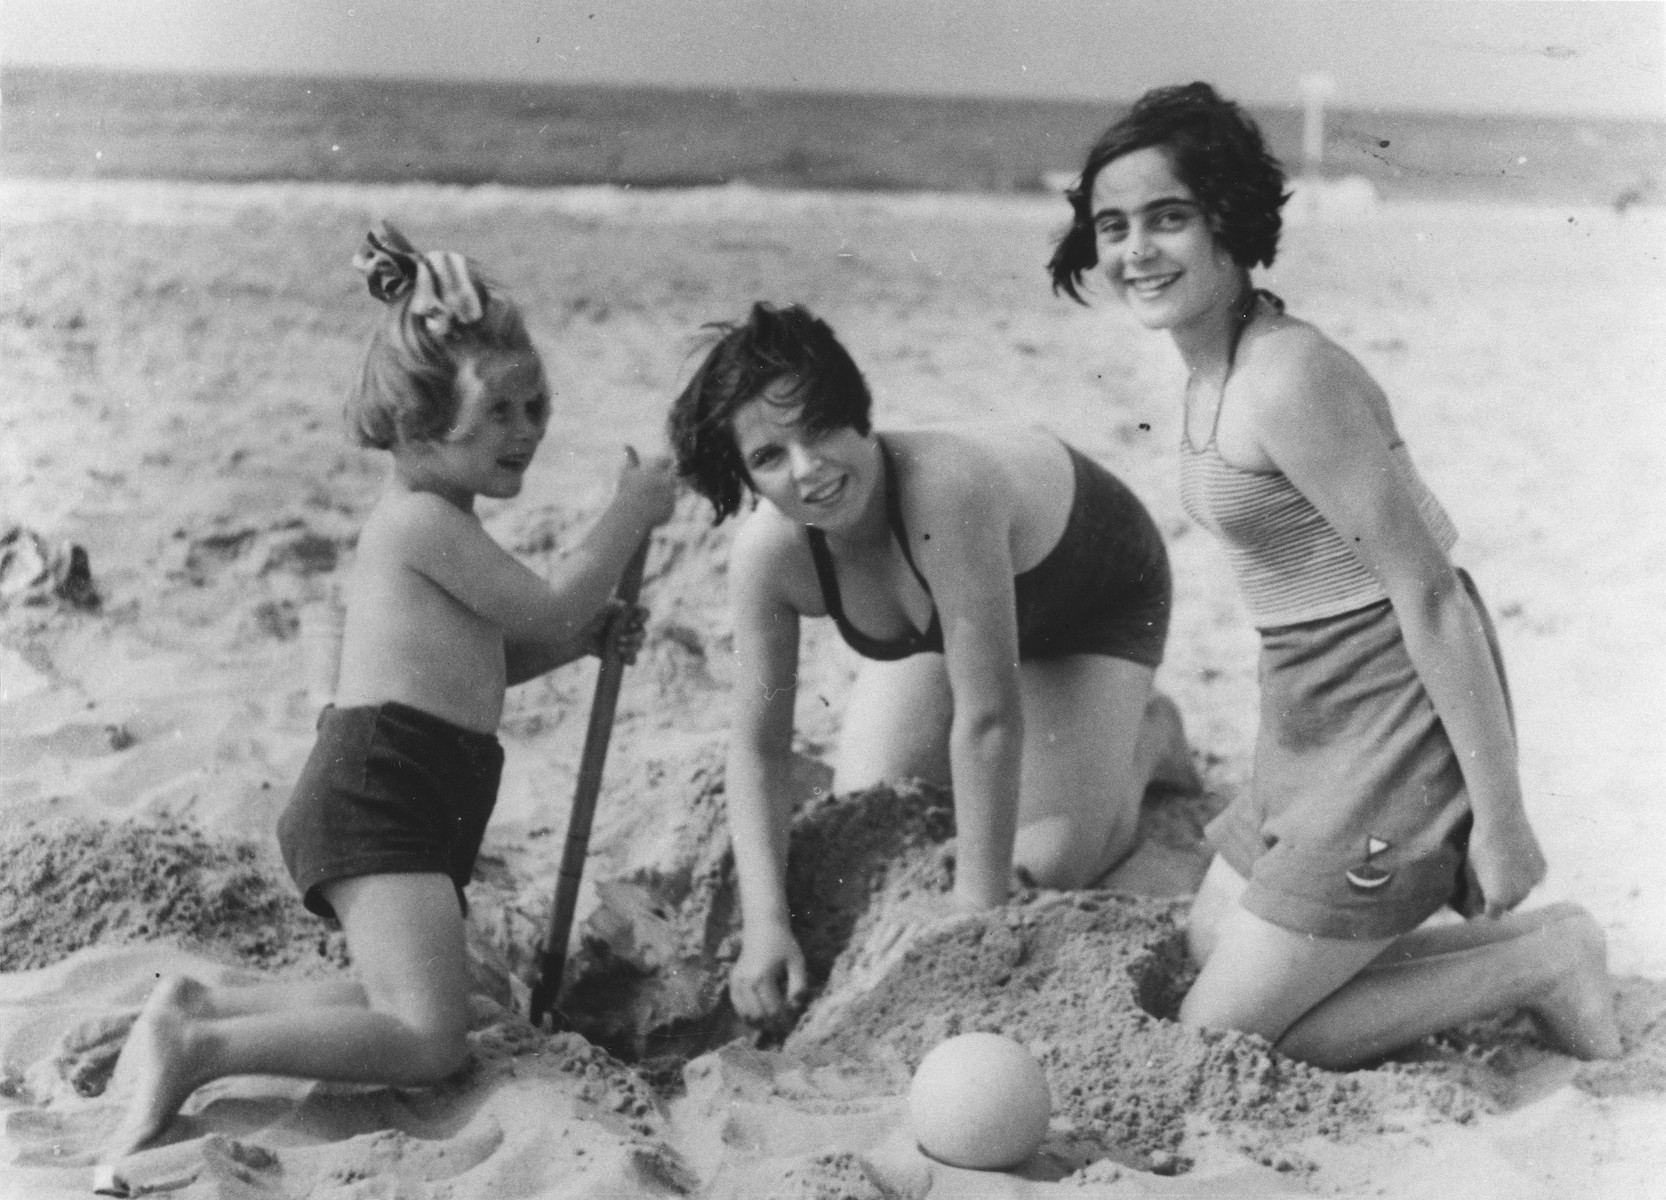 Doris Bloch and her cousin Annelise Hollander play in the sand at the beach.